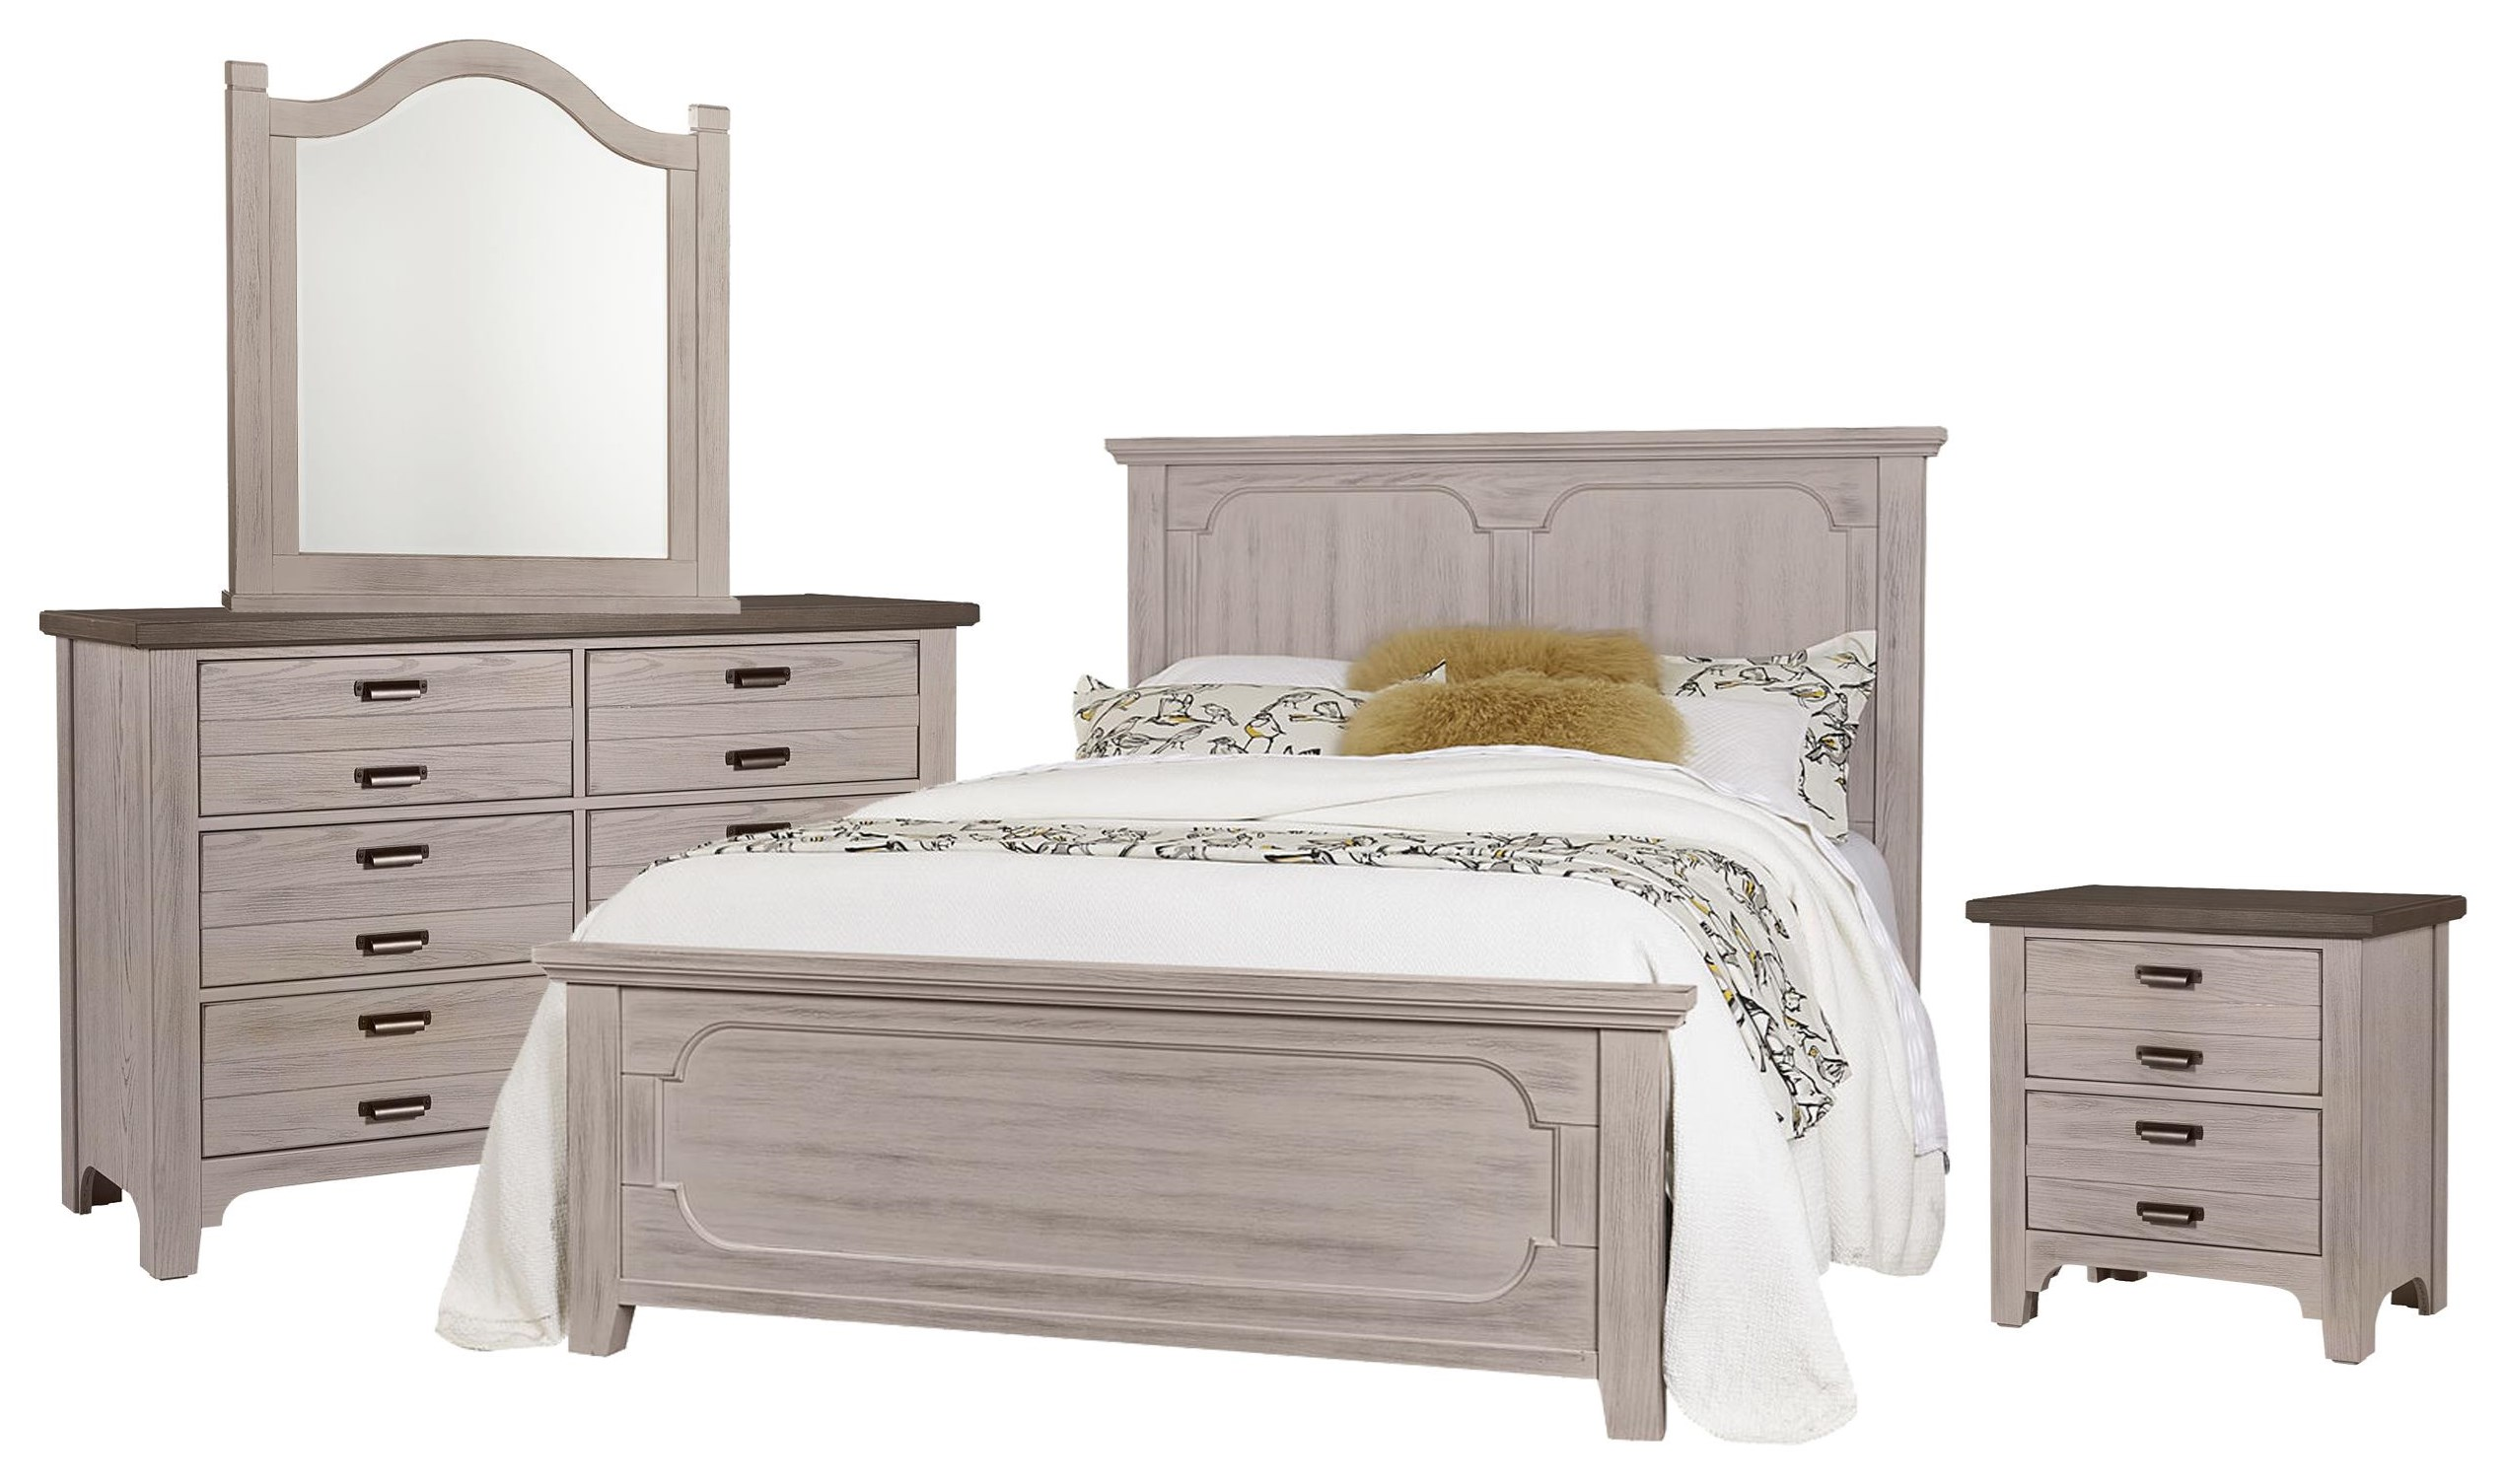 Bungalo Home Queen Panel, Dresser, Mirror, Nightstand by Vaughan Bassett at Johnny Janosik